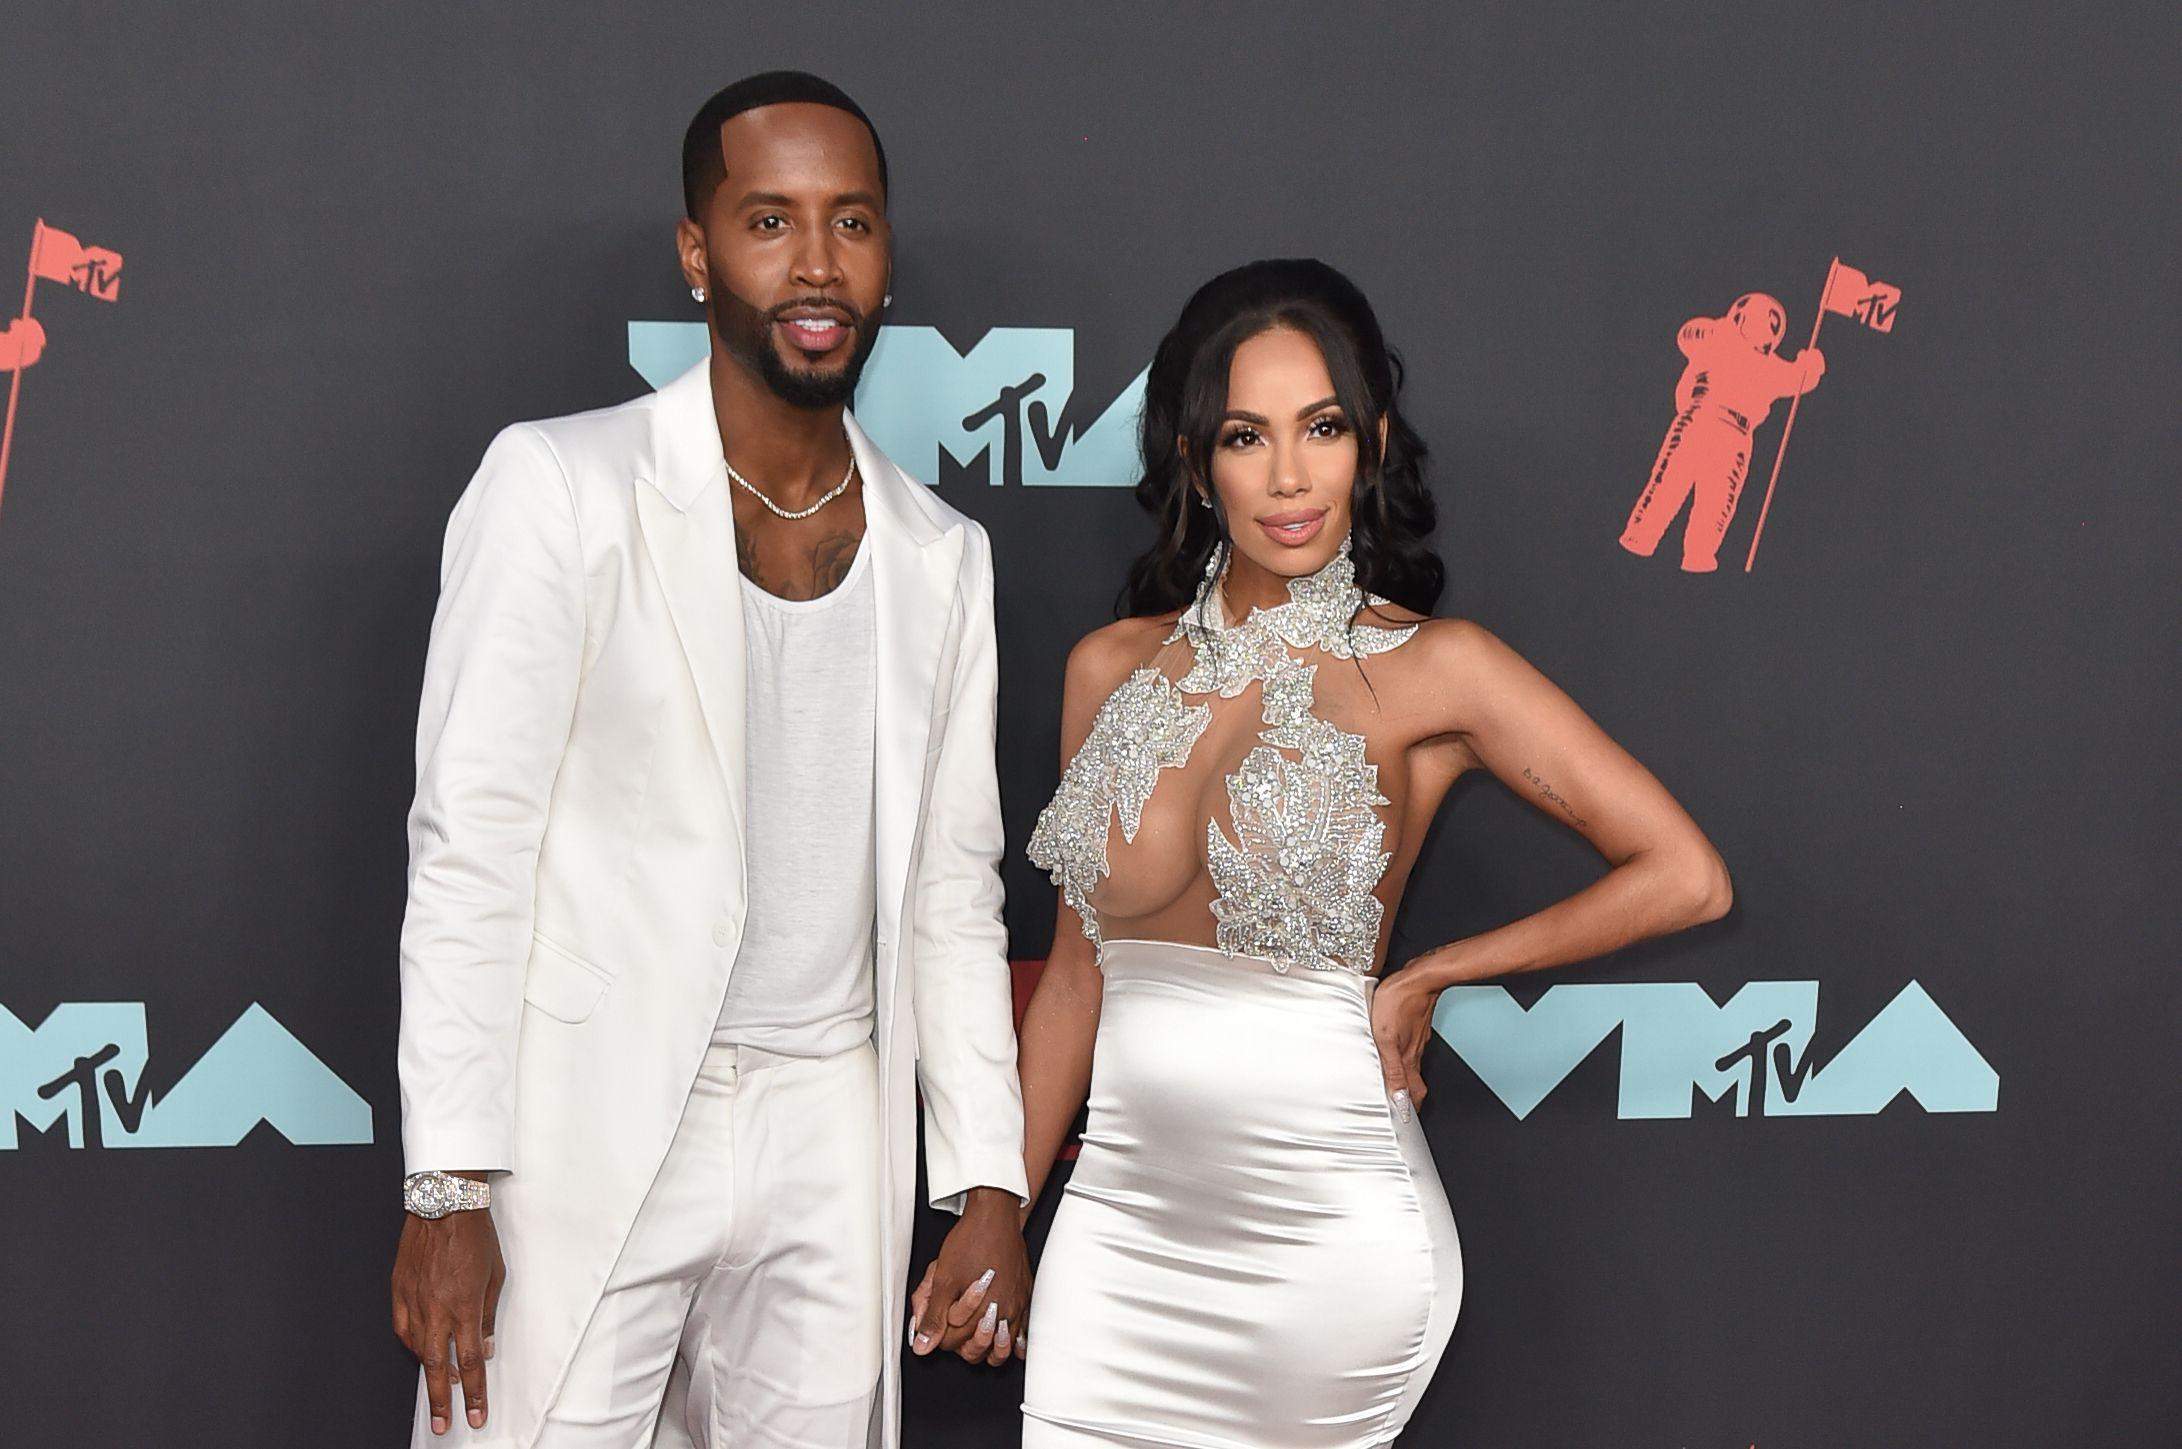 Safaree Samuels and Erica Mena at the VMA awards. | Photo: Getty Images